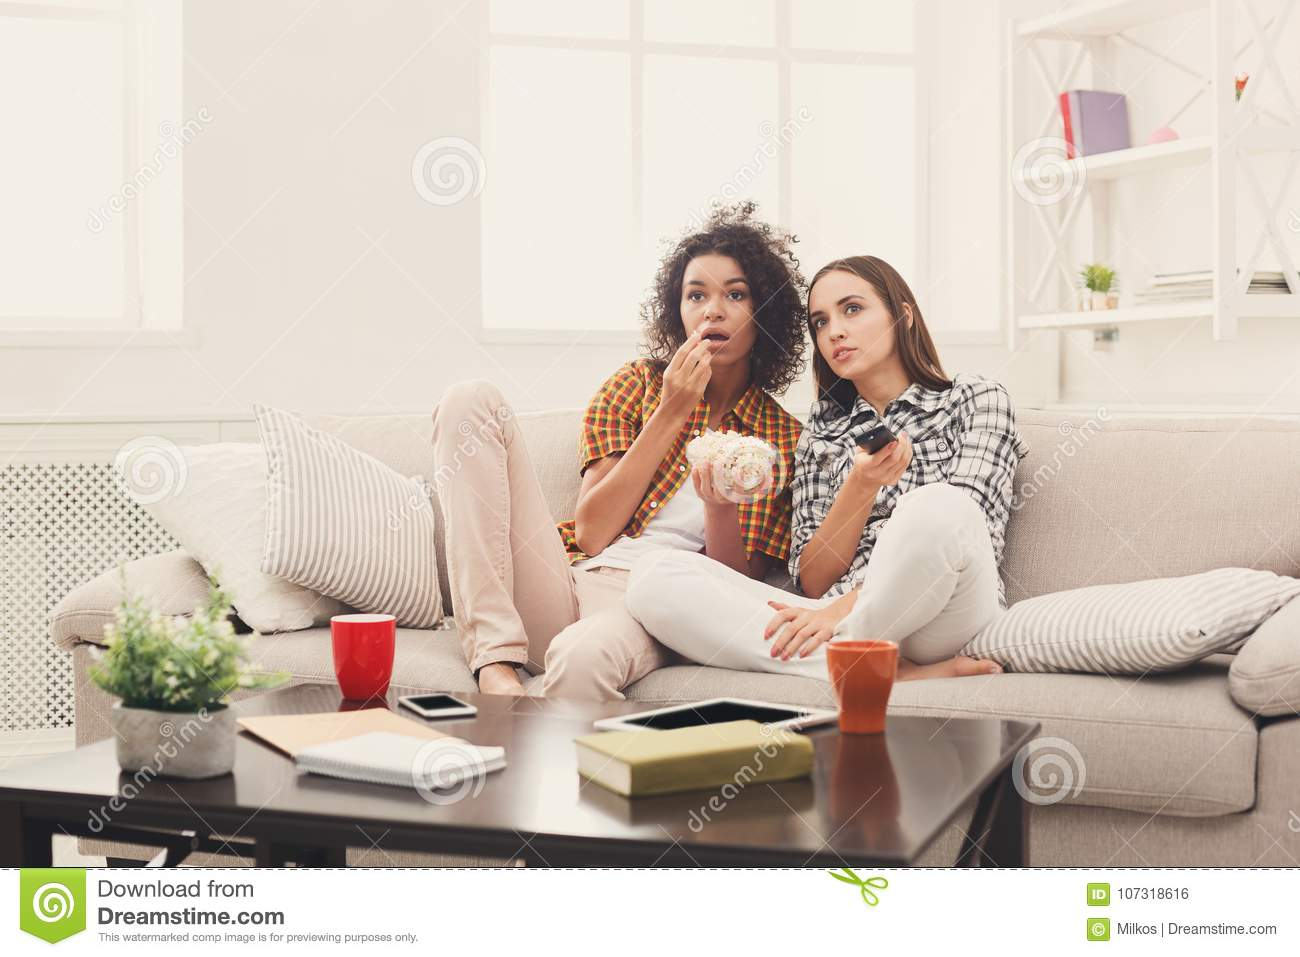 Groovy Frightened Young Women Watching Tv At Home Stock Photo Download Free Architecture Designs Scobabritishbridgeorg